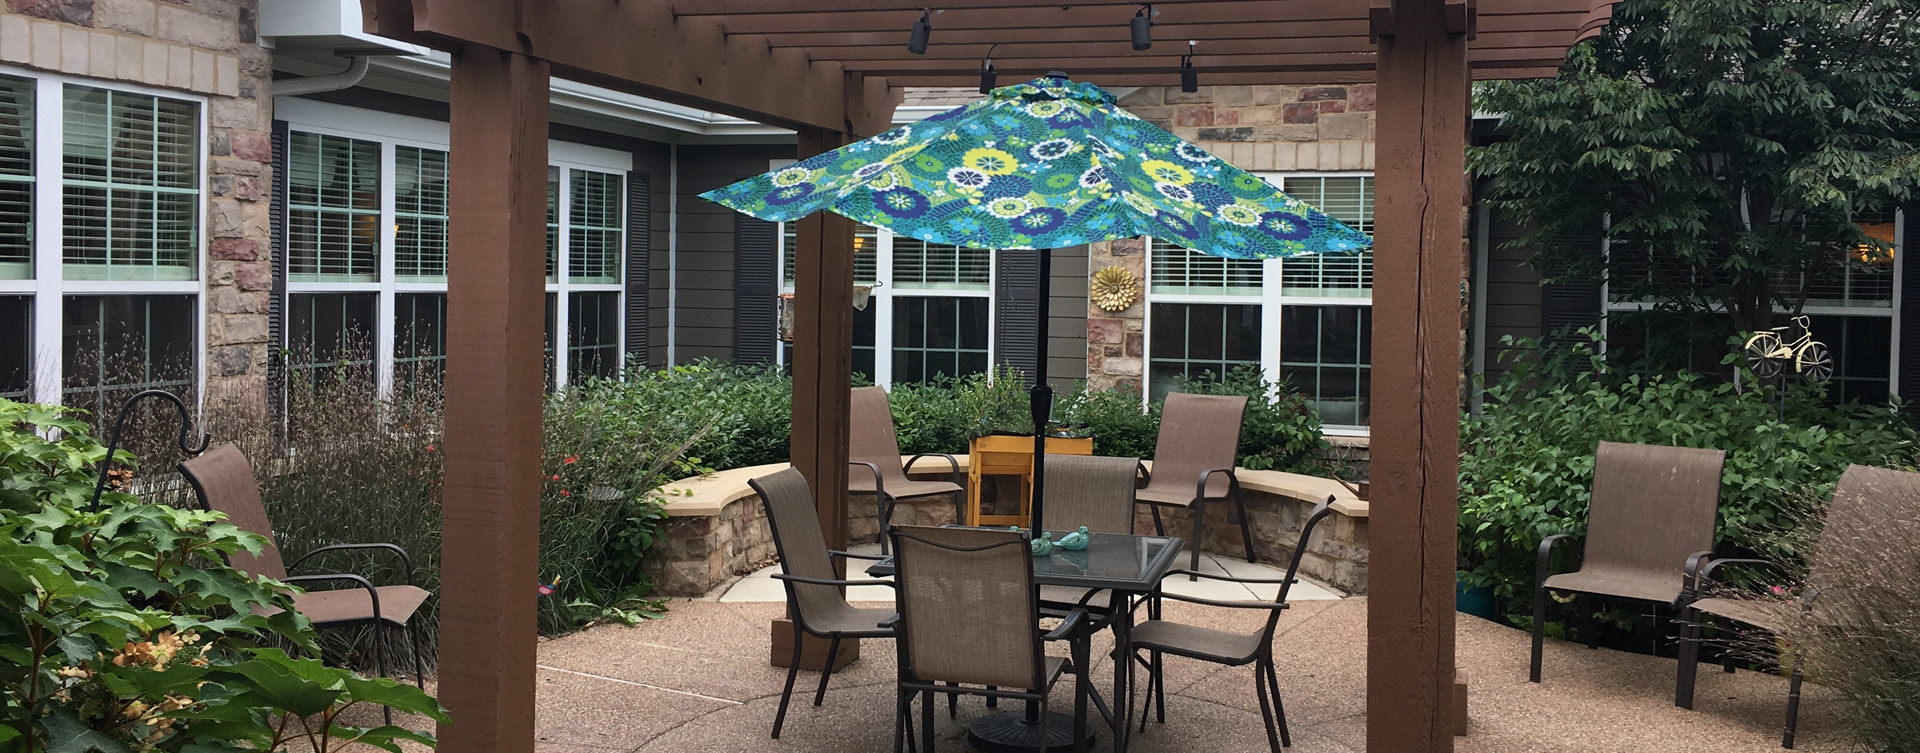 Residents with dementia can enjoy a traveling path, relaxed seating and raised garden beds in the courtyard at Bickford of Crown Point